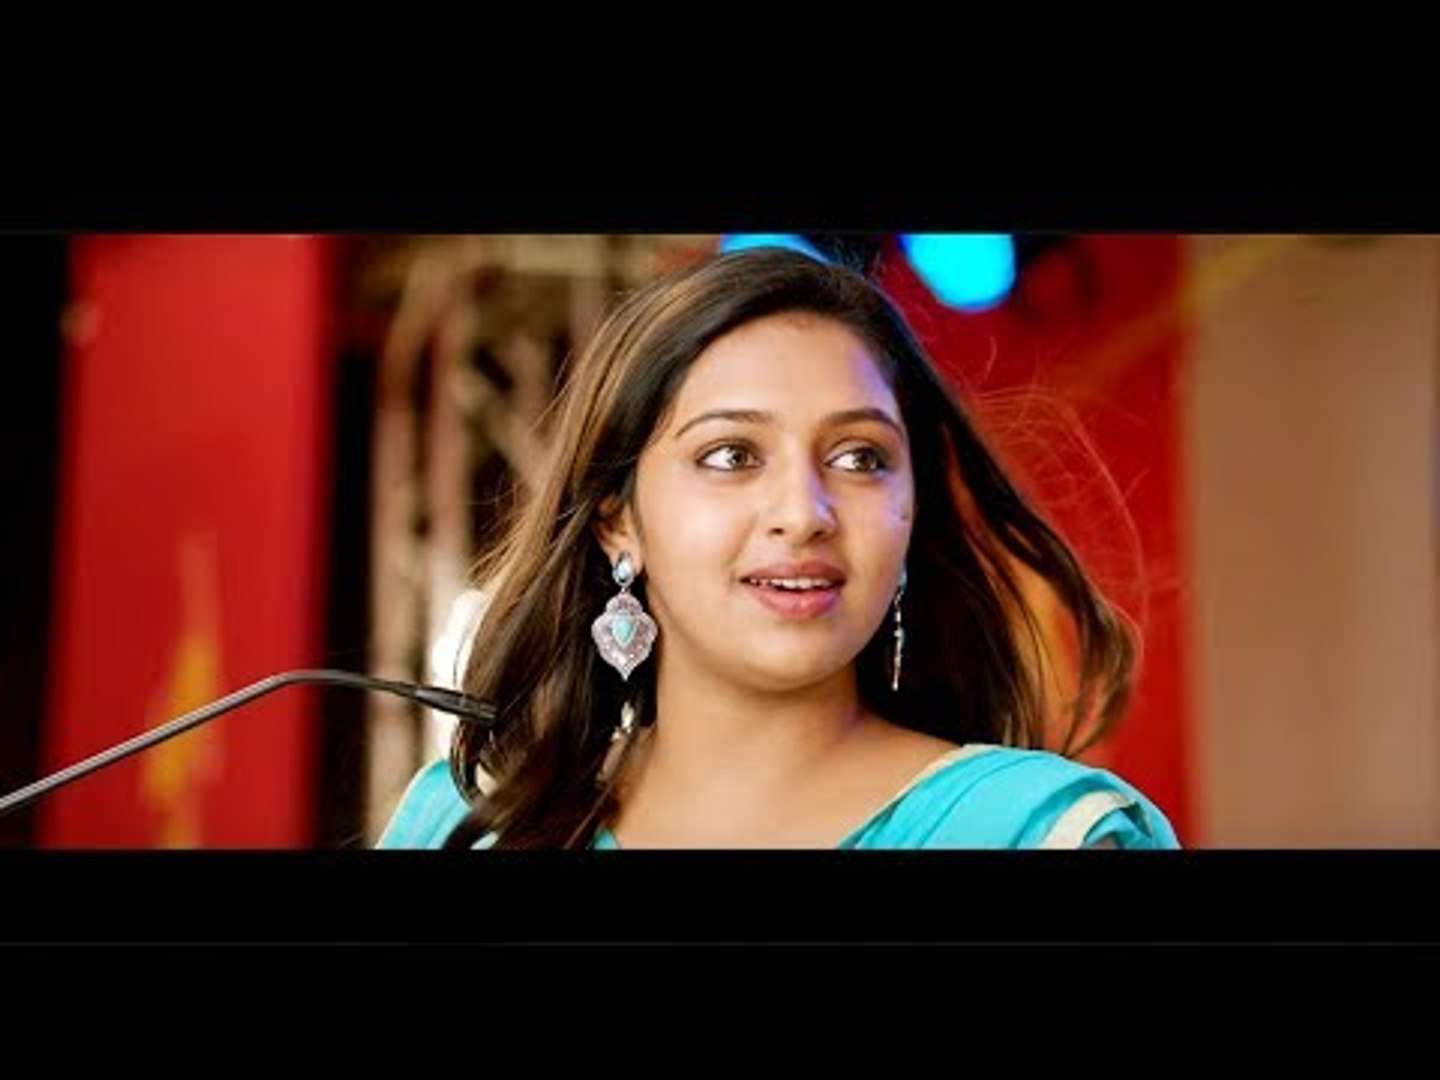 Tamil New Movies 2017 Full Movie | Latest Tamil Full Movies 2017 | New Releases Tamil Movie 2017